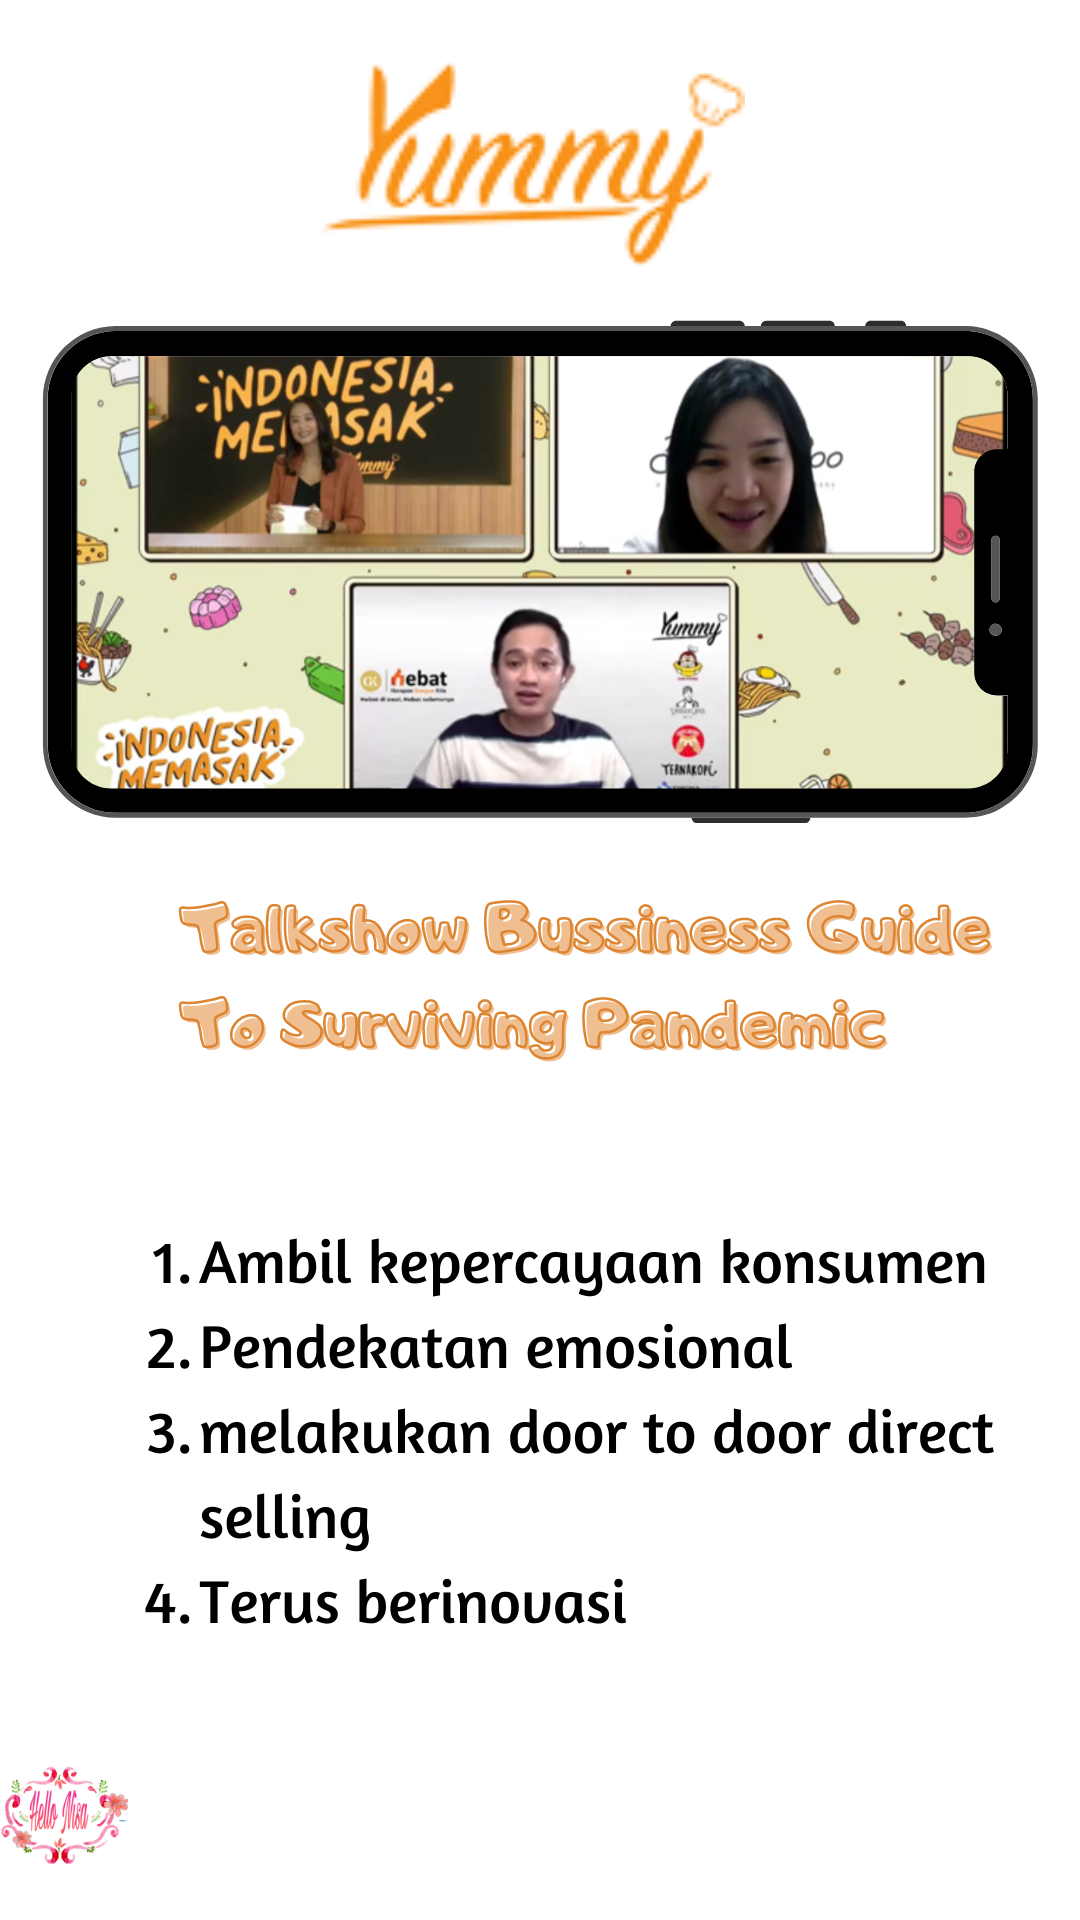 talkshow indonesia memasak by yummy app